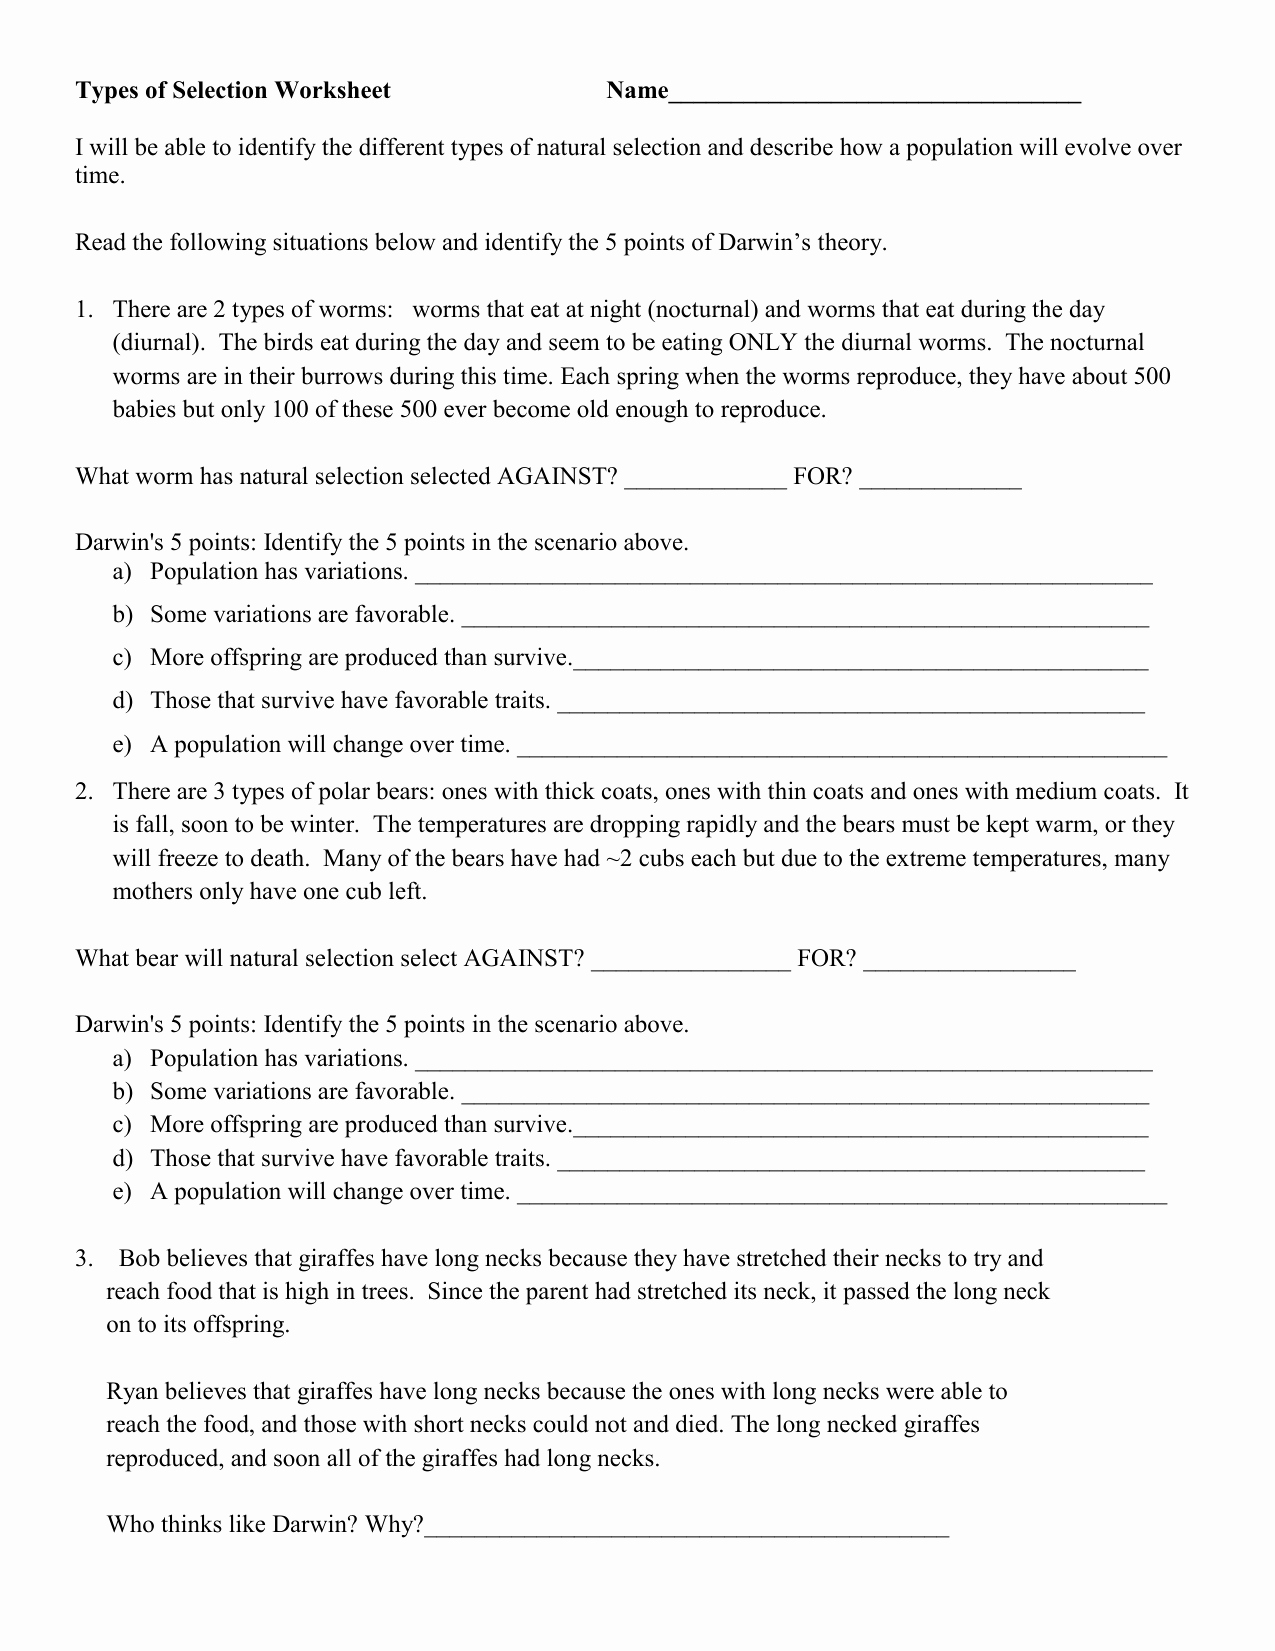 Types Of Natural Selection Worksheet Elegant Types Of Natural Selection Ws Jl 2018